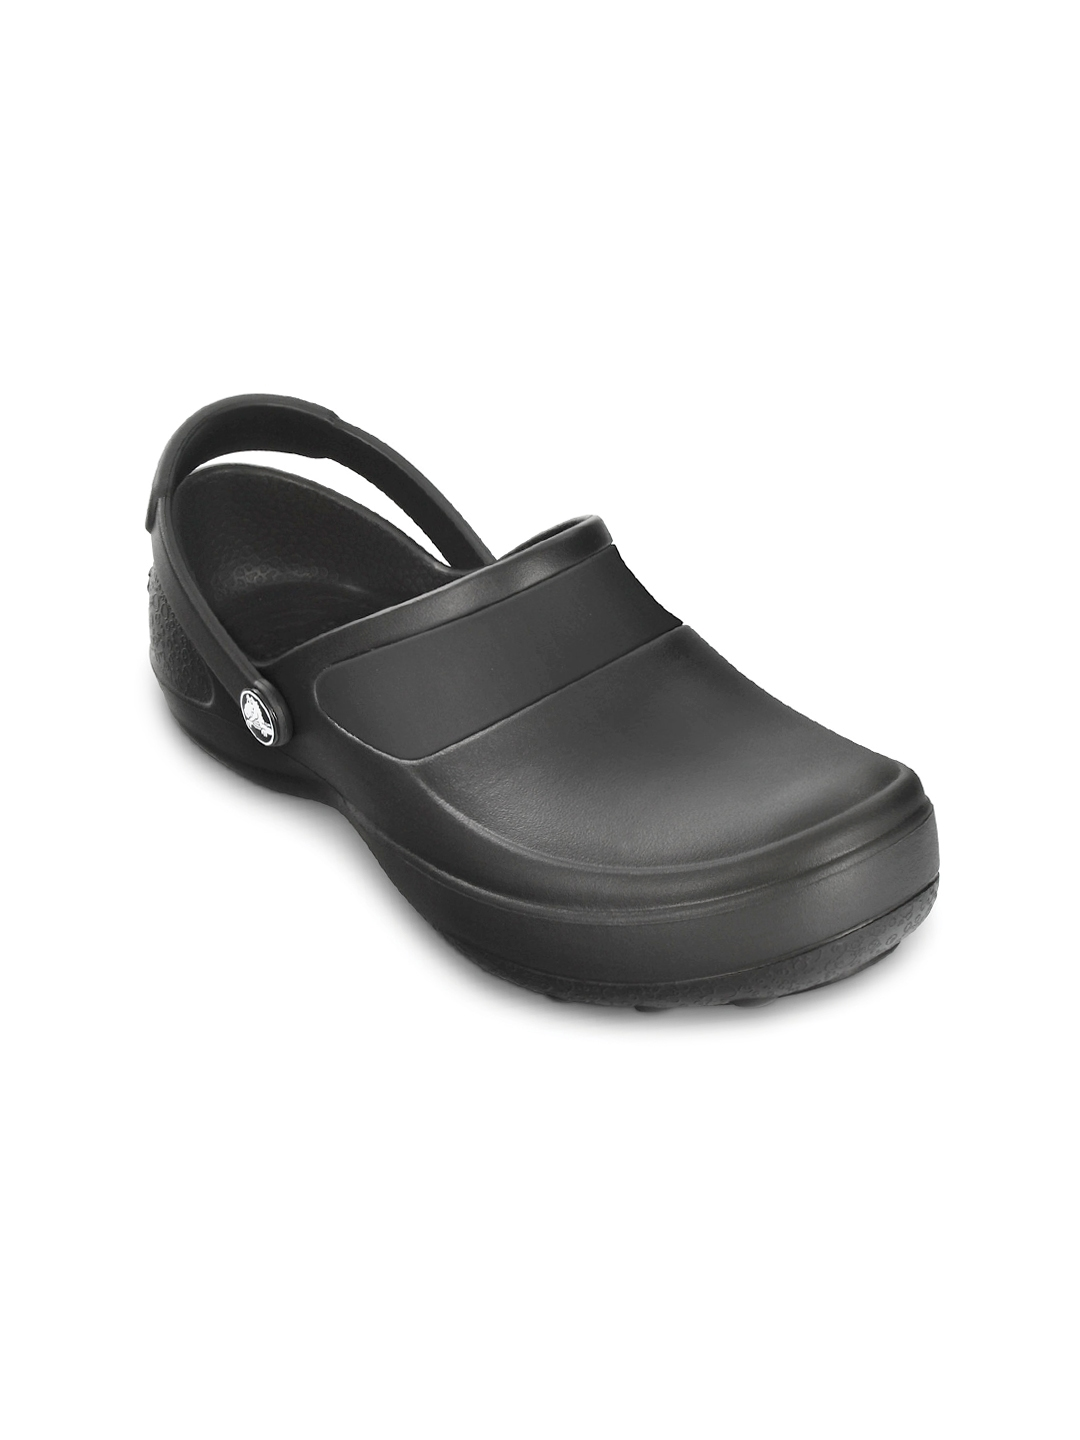 Buy Crocs Women Black Clogs - Flip Flops for Women 1316567  6bf670cfa1